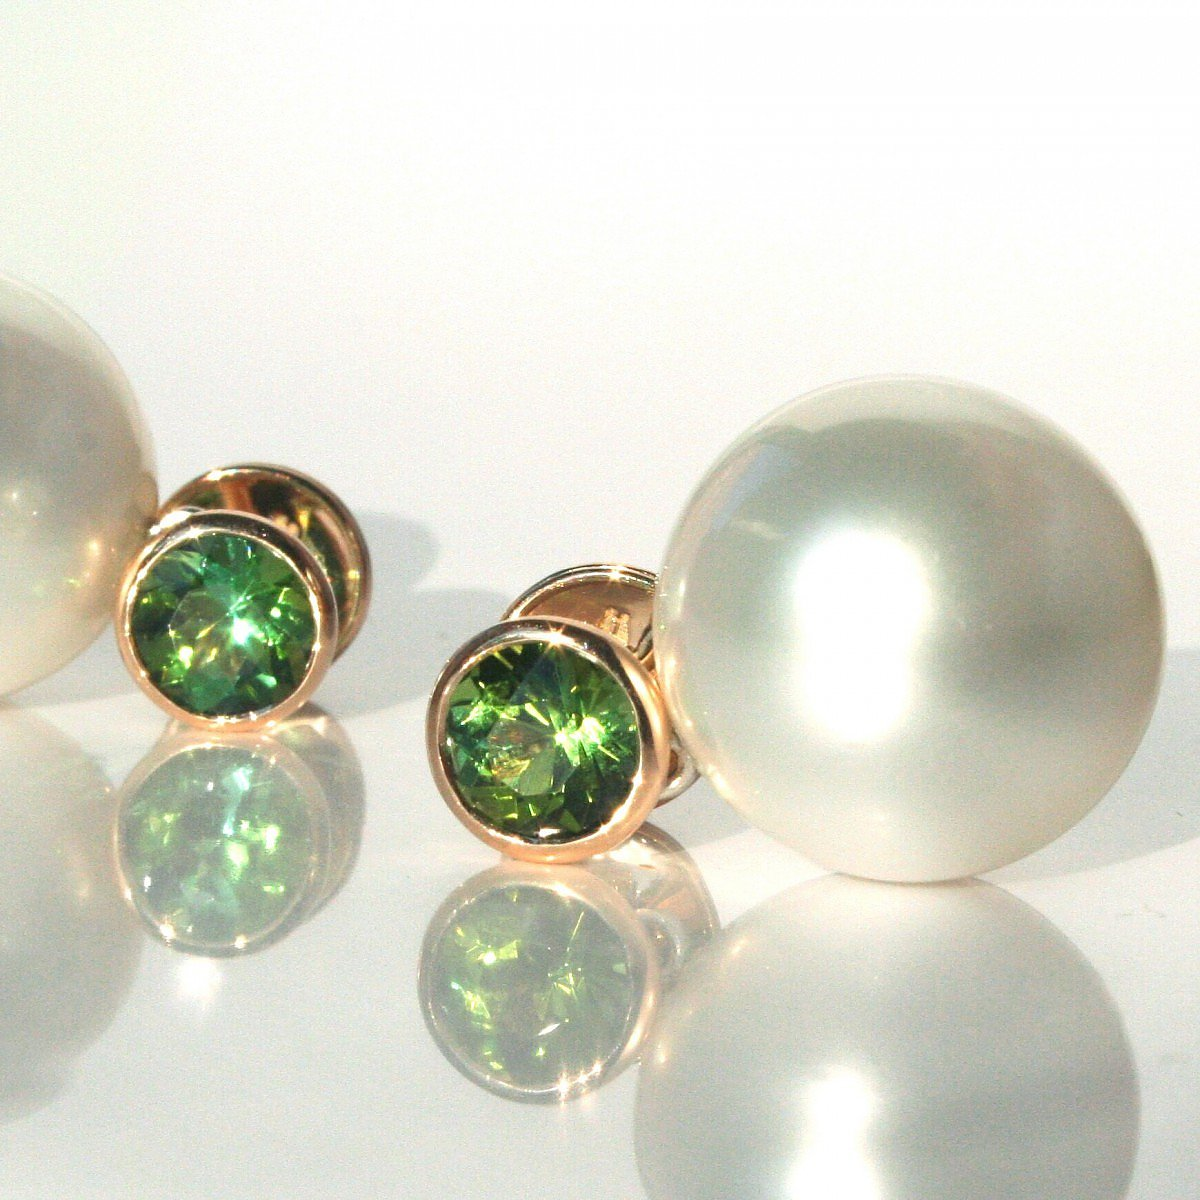 Earrings, Rosegold with green Tourmaline and South Sea Pearls